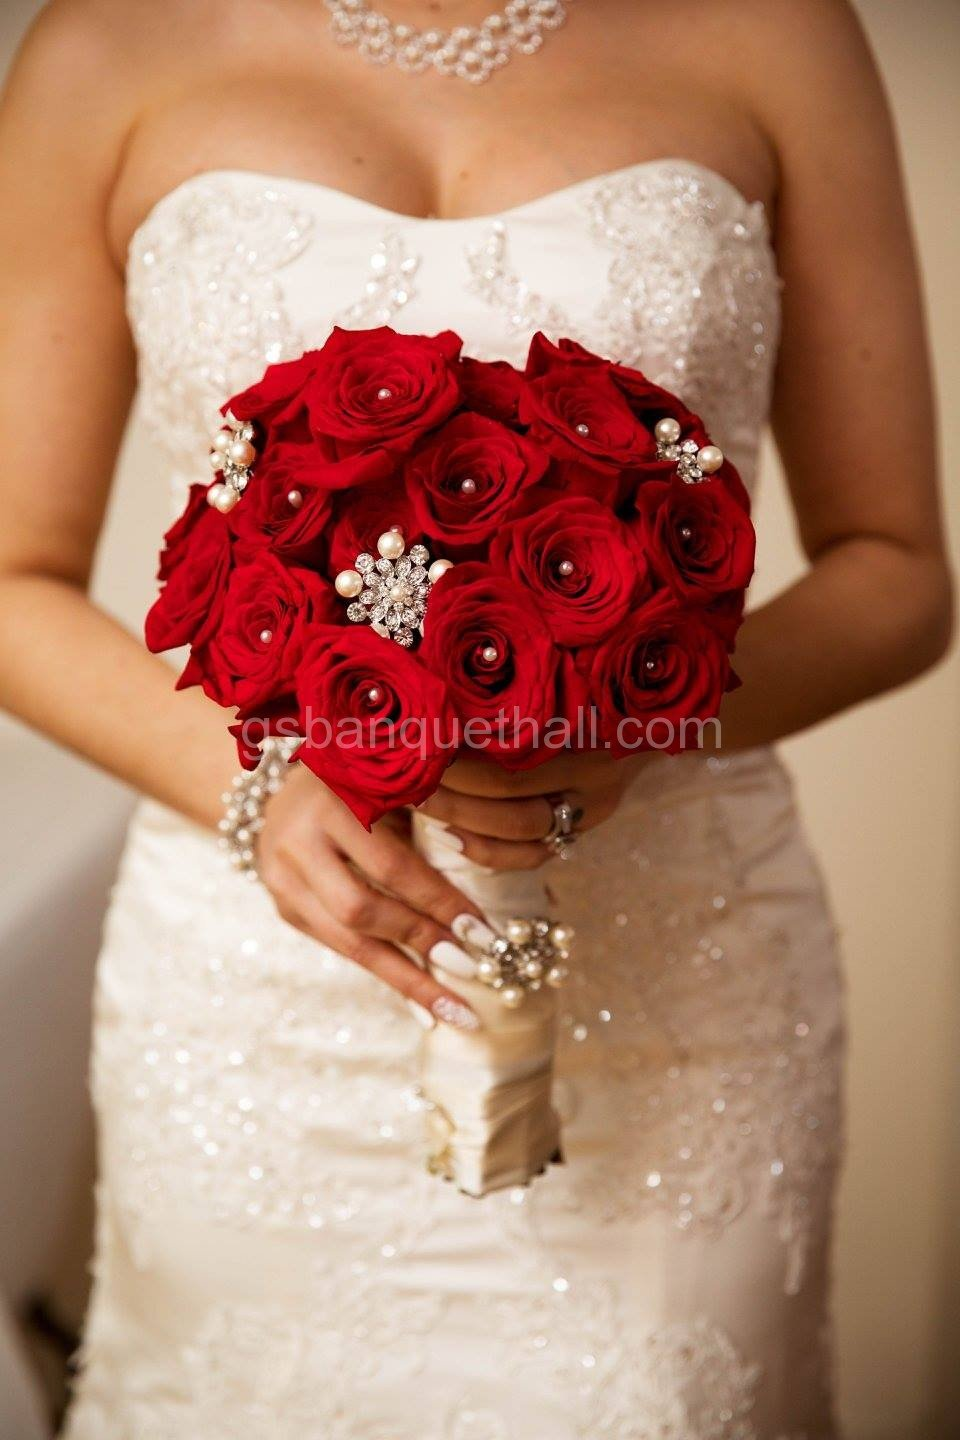 Red romance wedding red theme decoration party decoration shop for hanging birthday decorations birthday banners table decorations confetti and more wedding hall banquet hall party decorations junglespirit Image collections